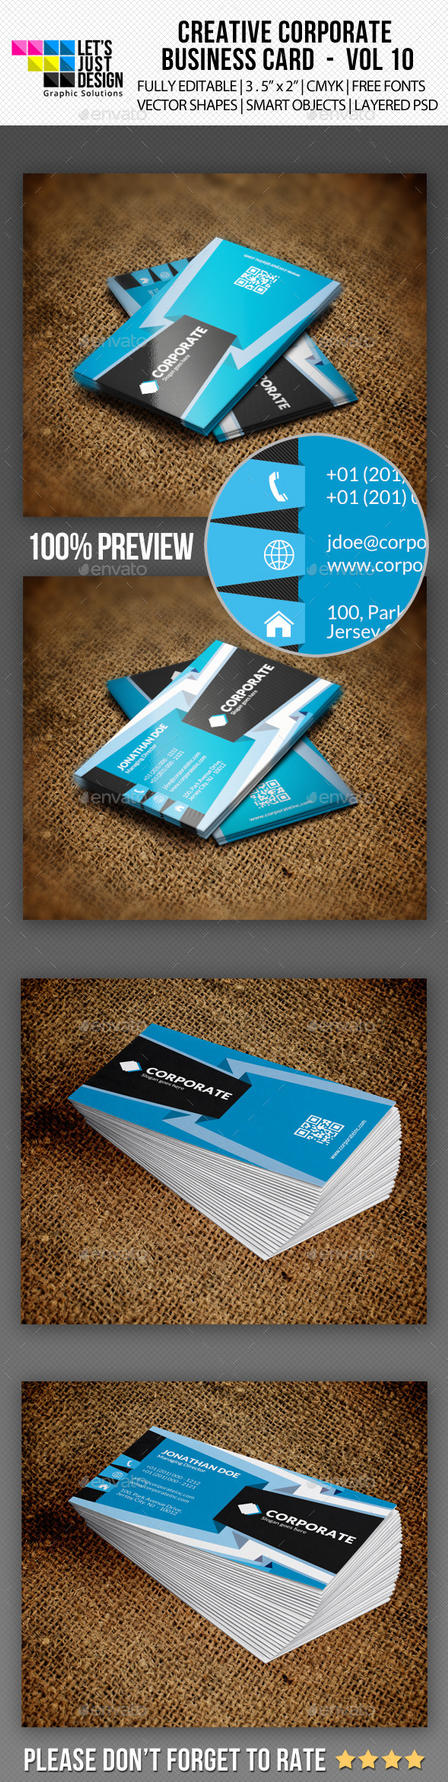 Corporate Business Card Vol 10 by jasonmendes